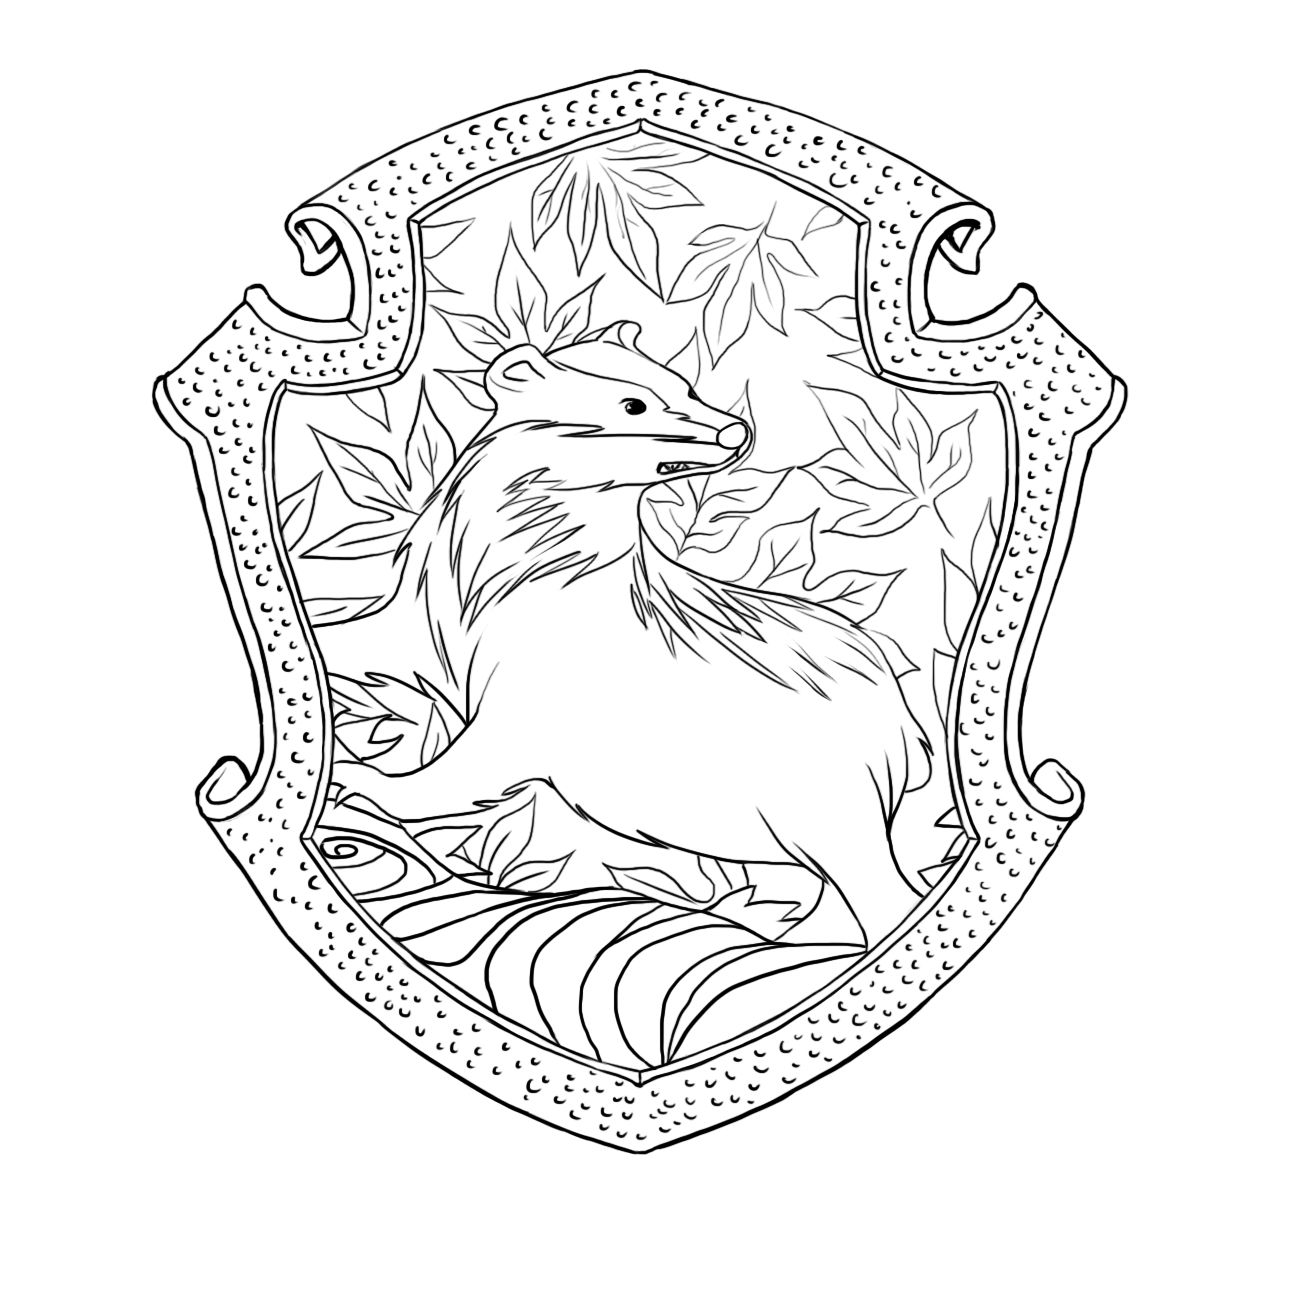 Hufflepuff Crest Coloring Page Colouring Sketch Coloring Page Harry Potter Coloring Pages Harry Potter Colors Harry Potter Drawings